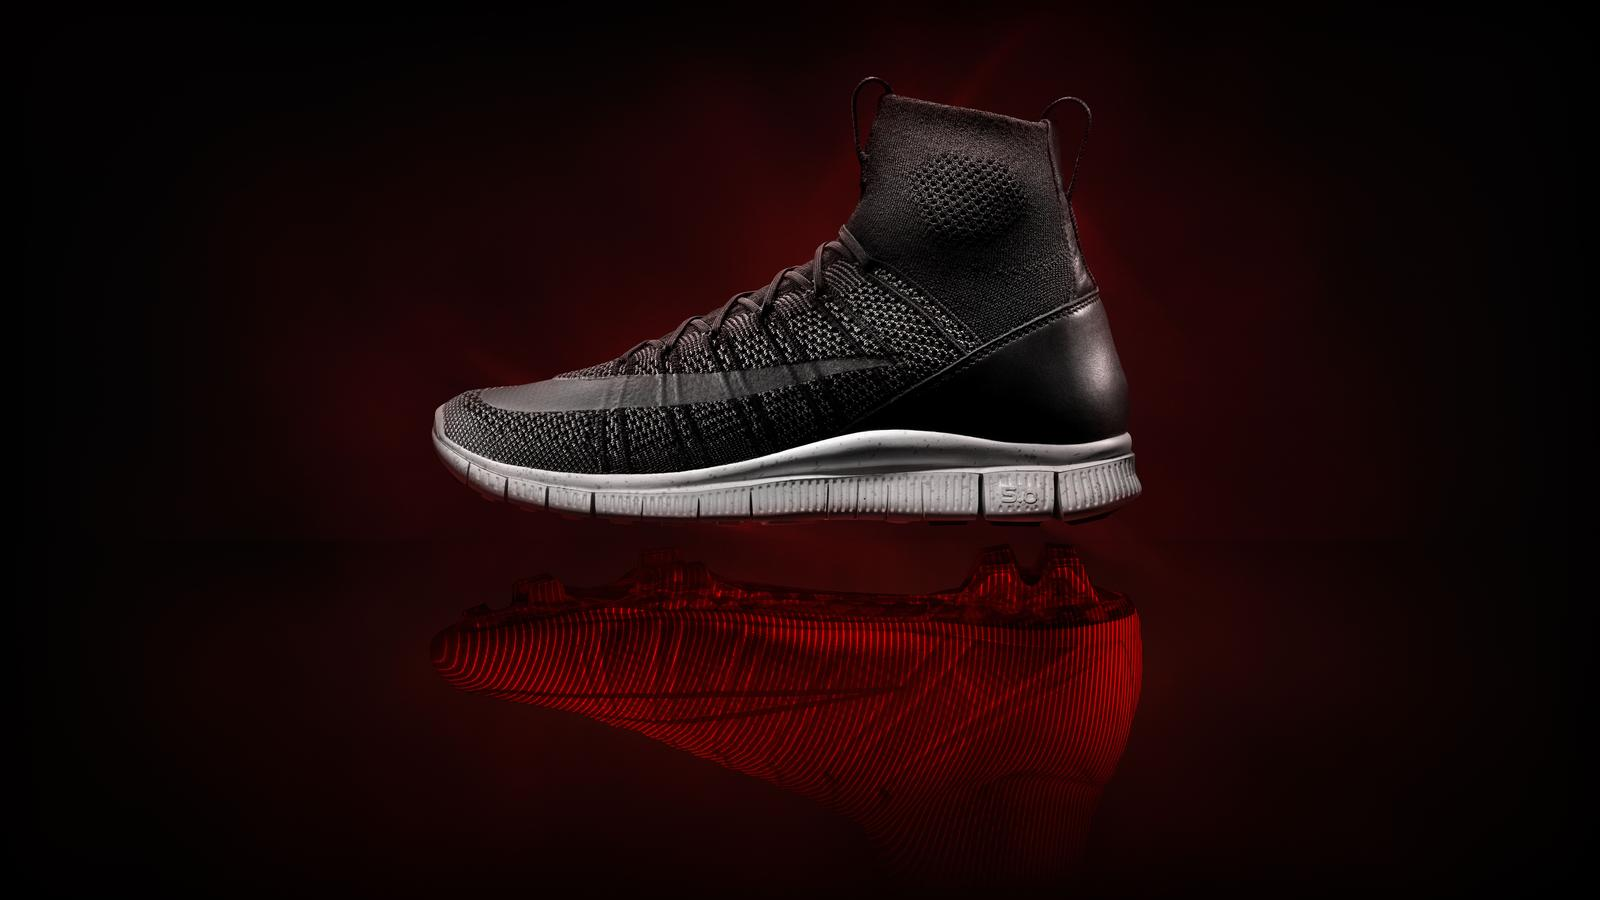 a5e9af000d4 The Free Mercurial Superfly by HTM - Nike News